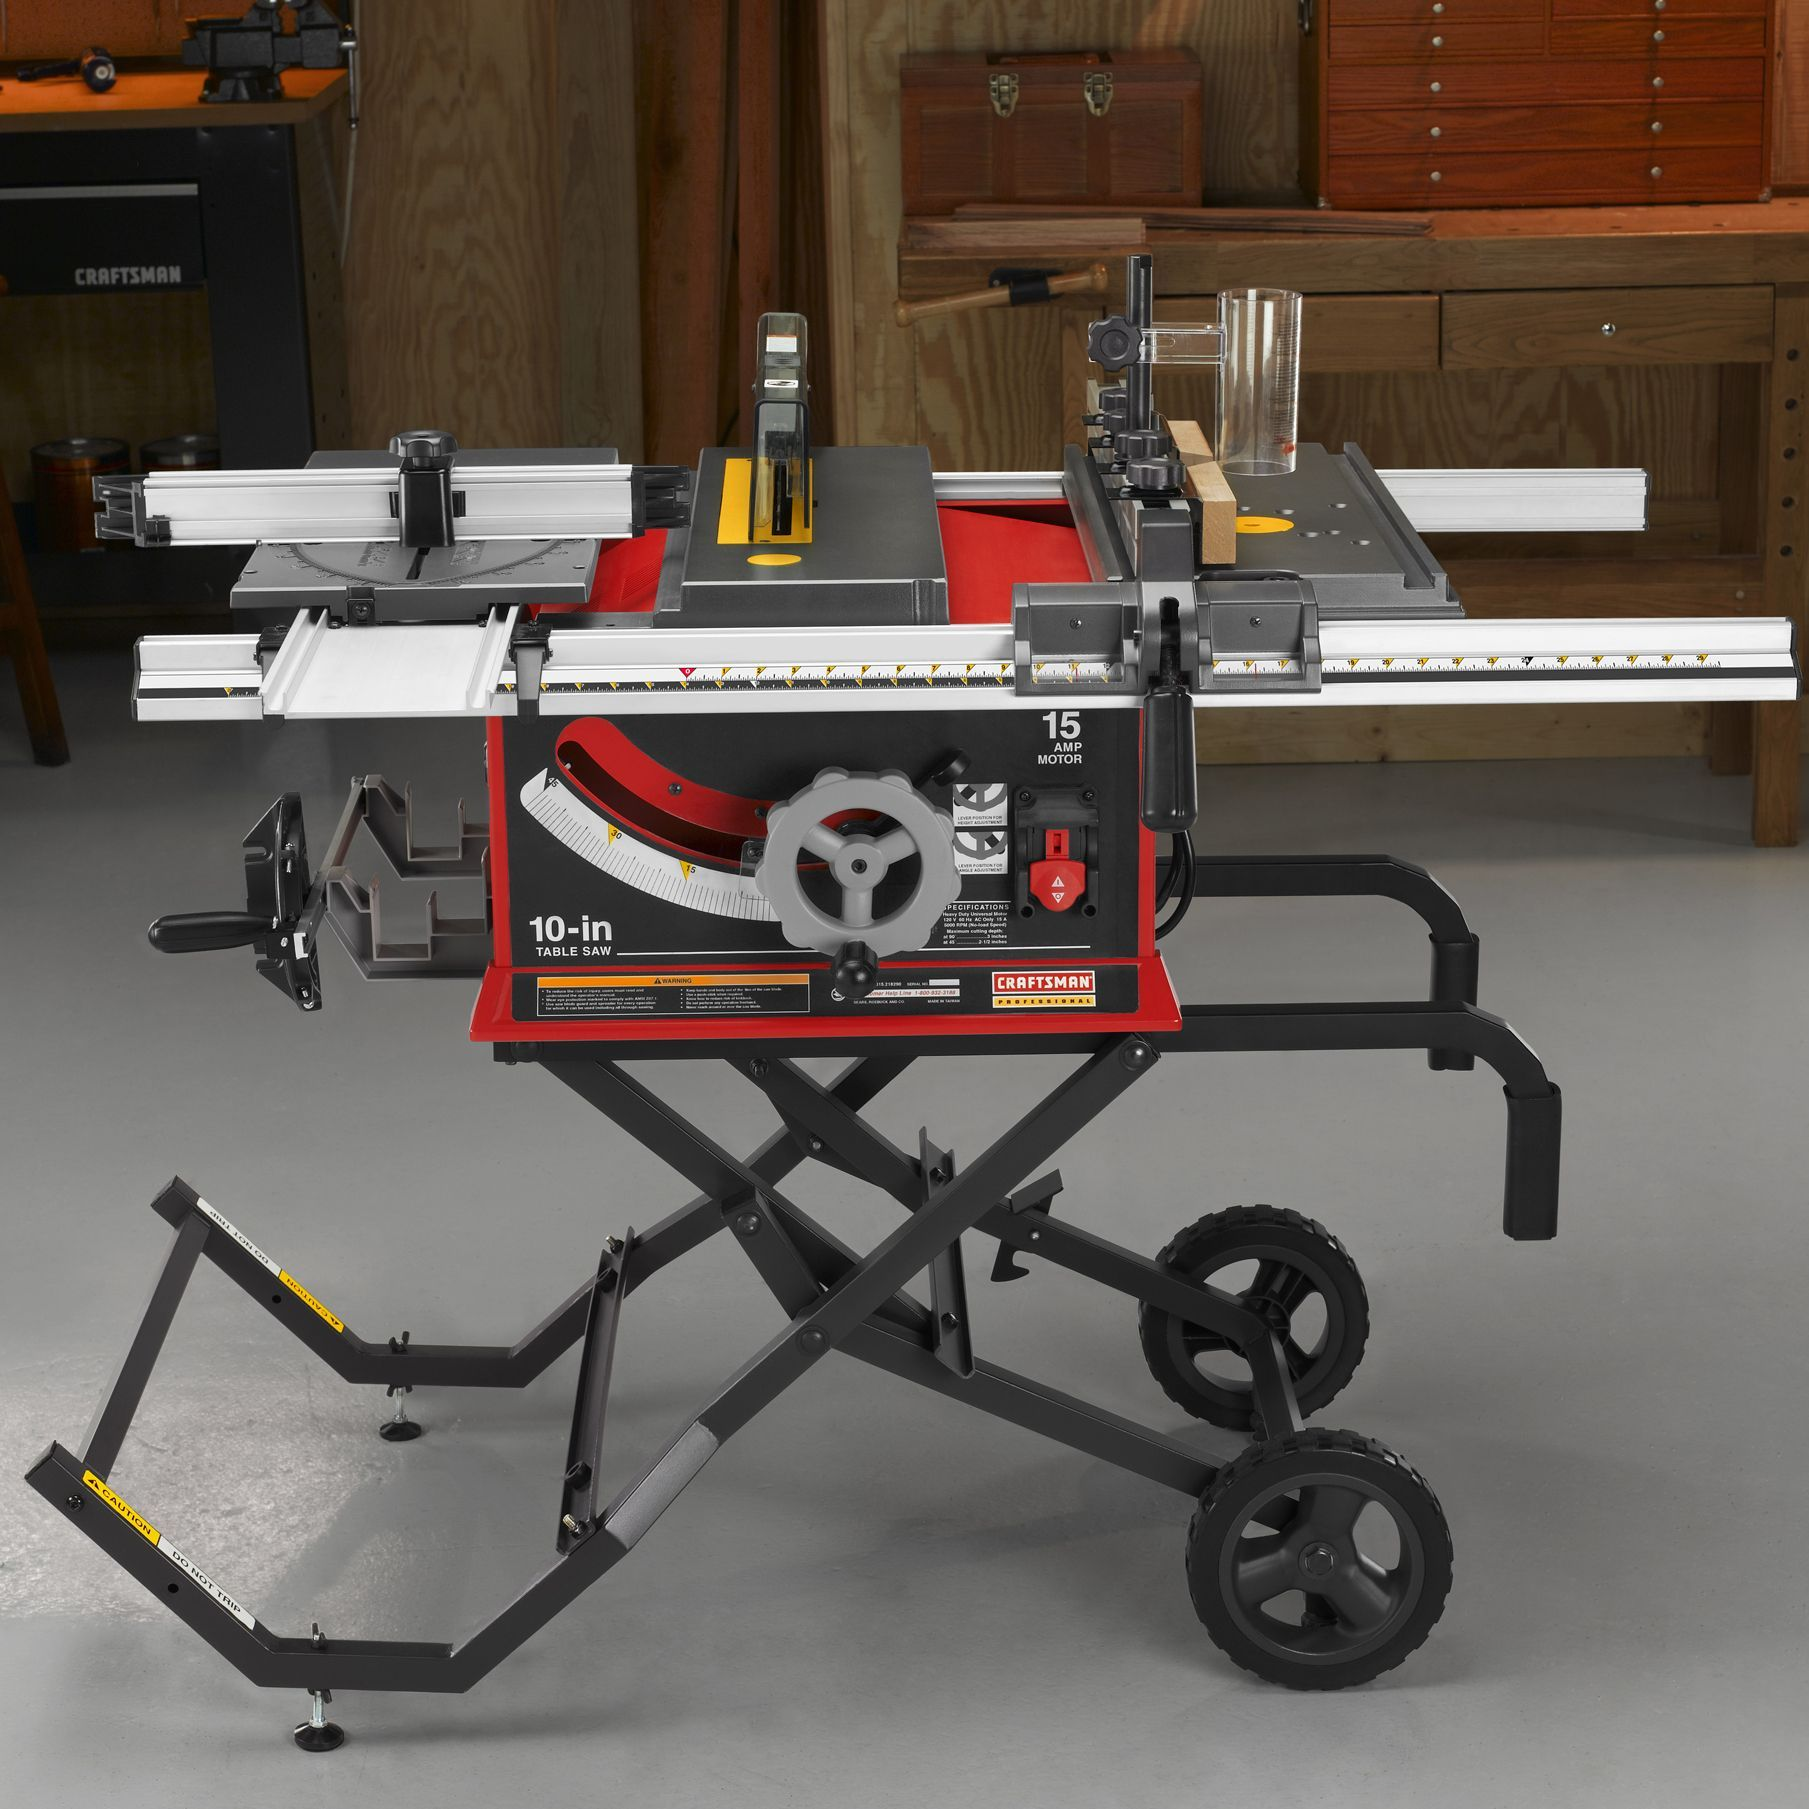 Professional 15 amp 10 portable table saw 21829 craftsman saw table professional 15 amp 10 portable table saw 21829 craftsman saw table keyboard keysfo Images